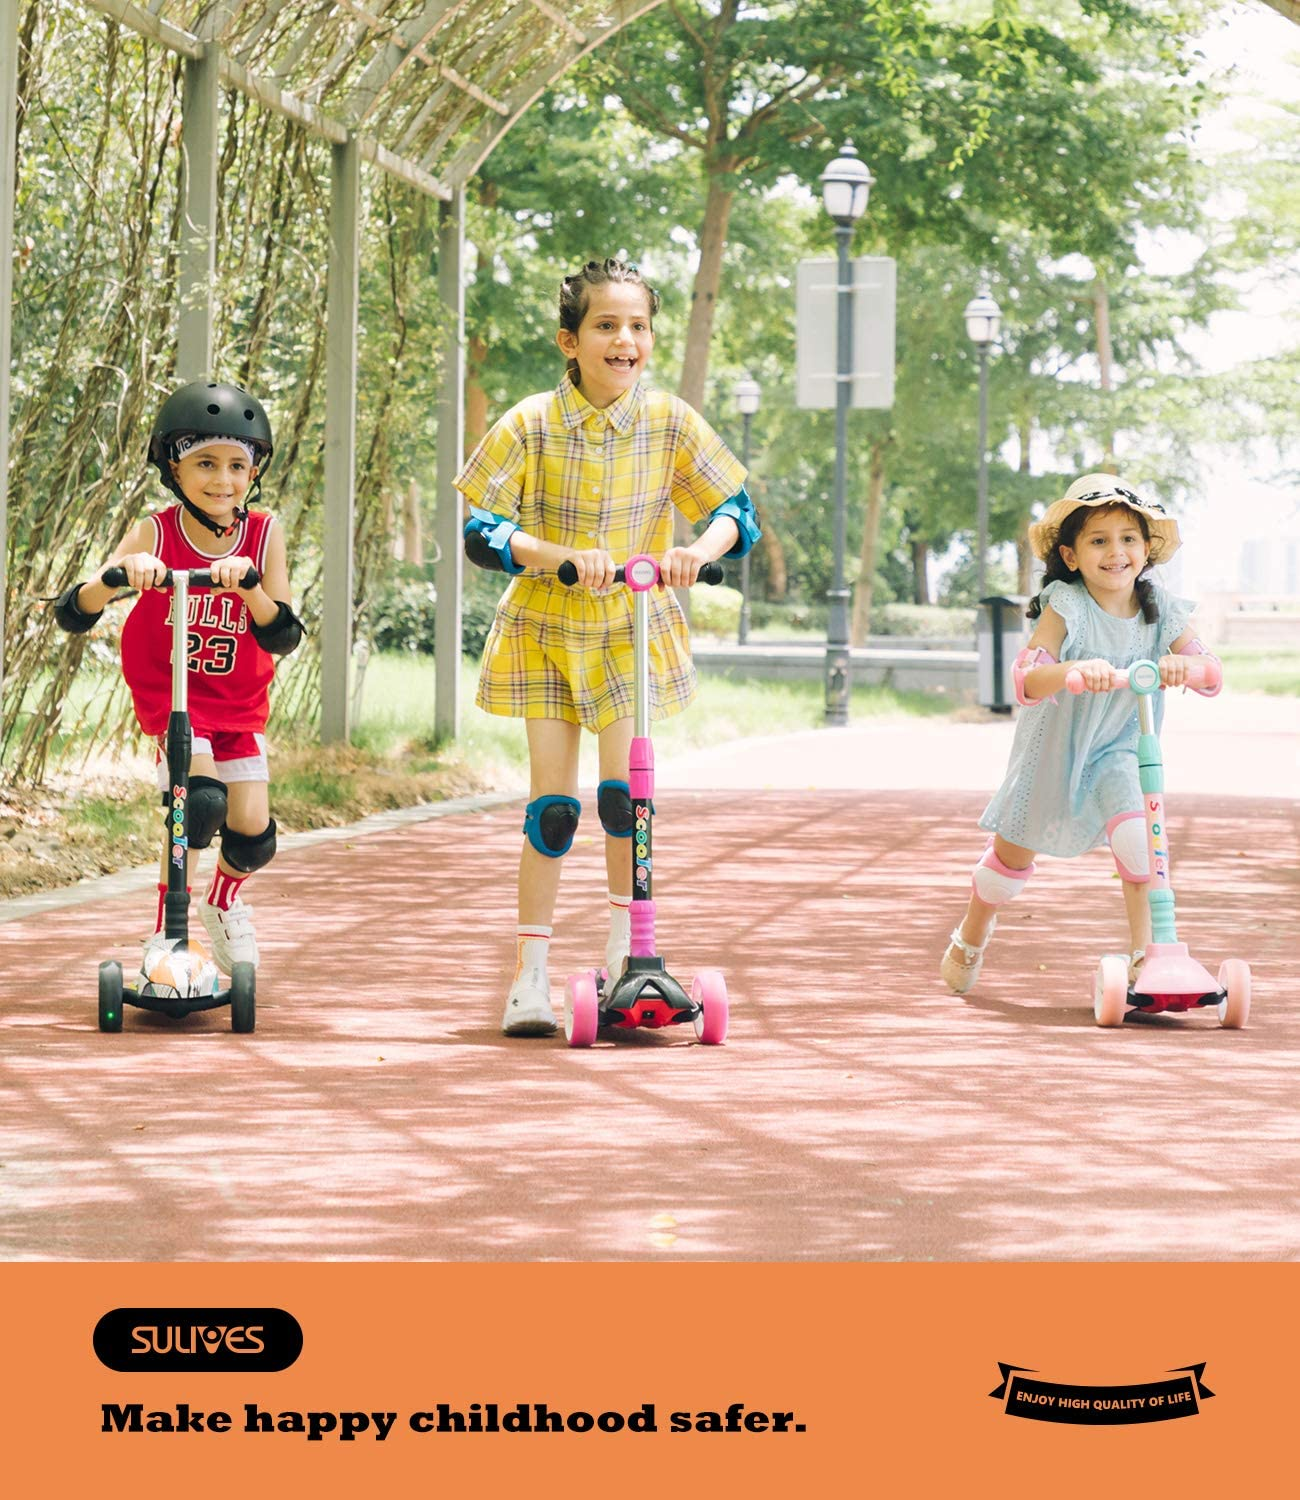 SULIVES Kick Scooter for Toddlers Girls /& Boys with Cool LED Light 3 Wheel Childrens Scooter with Geometric Mosaic Color Style for Ages 3-5 6-12